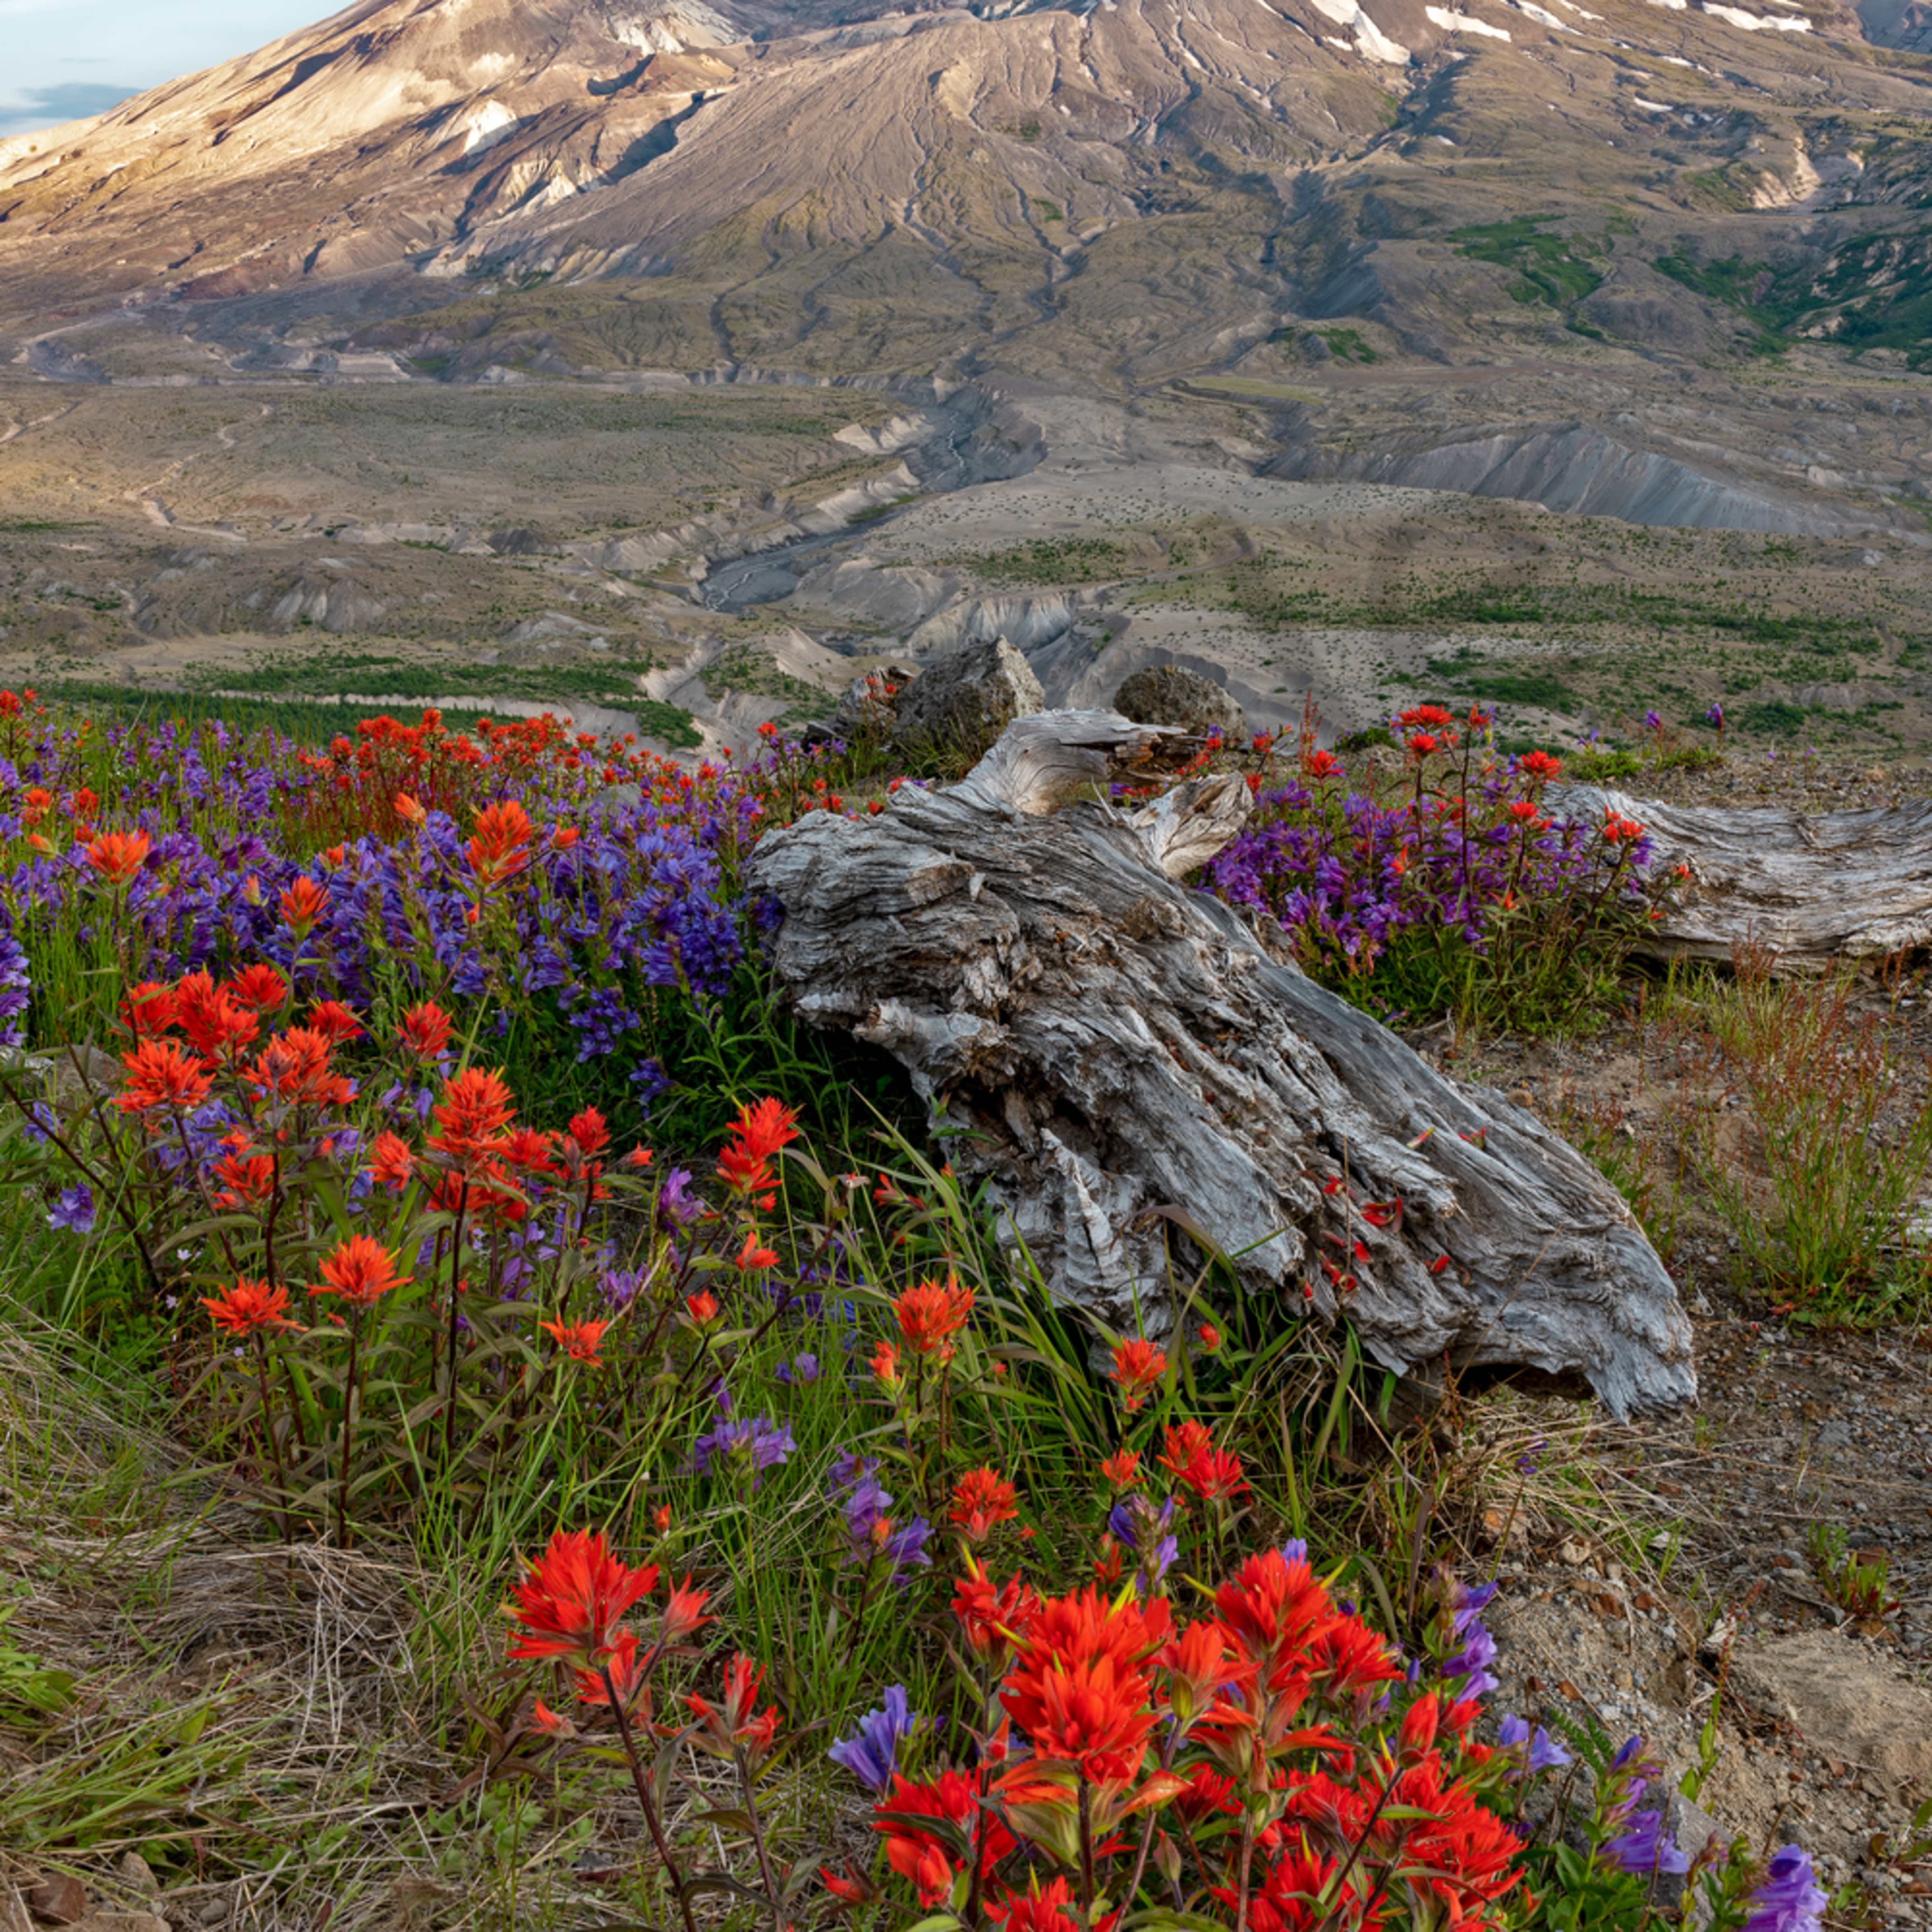 Observatory and flowers iii vertical at mount st. helens wa nhu8es